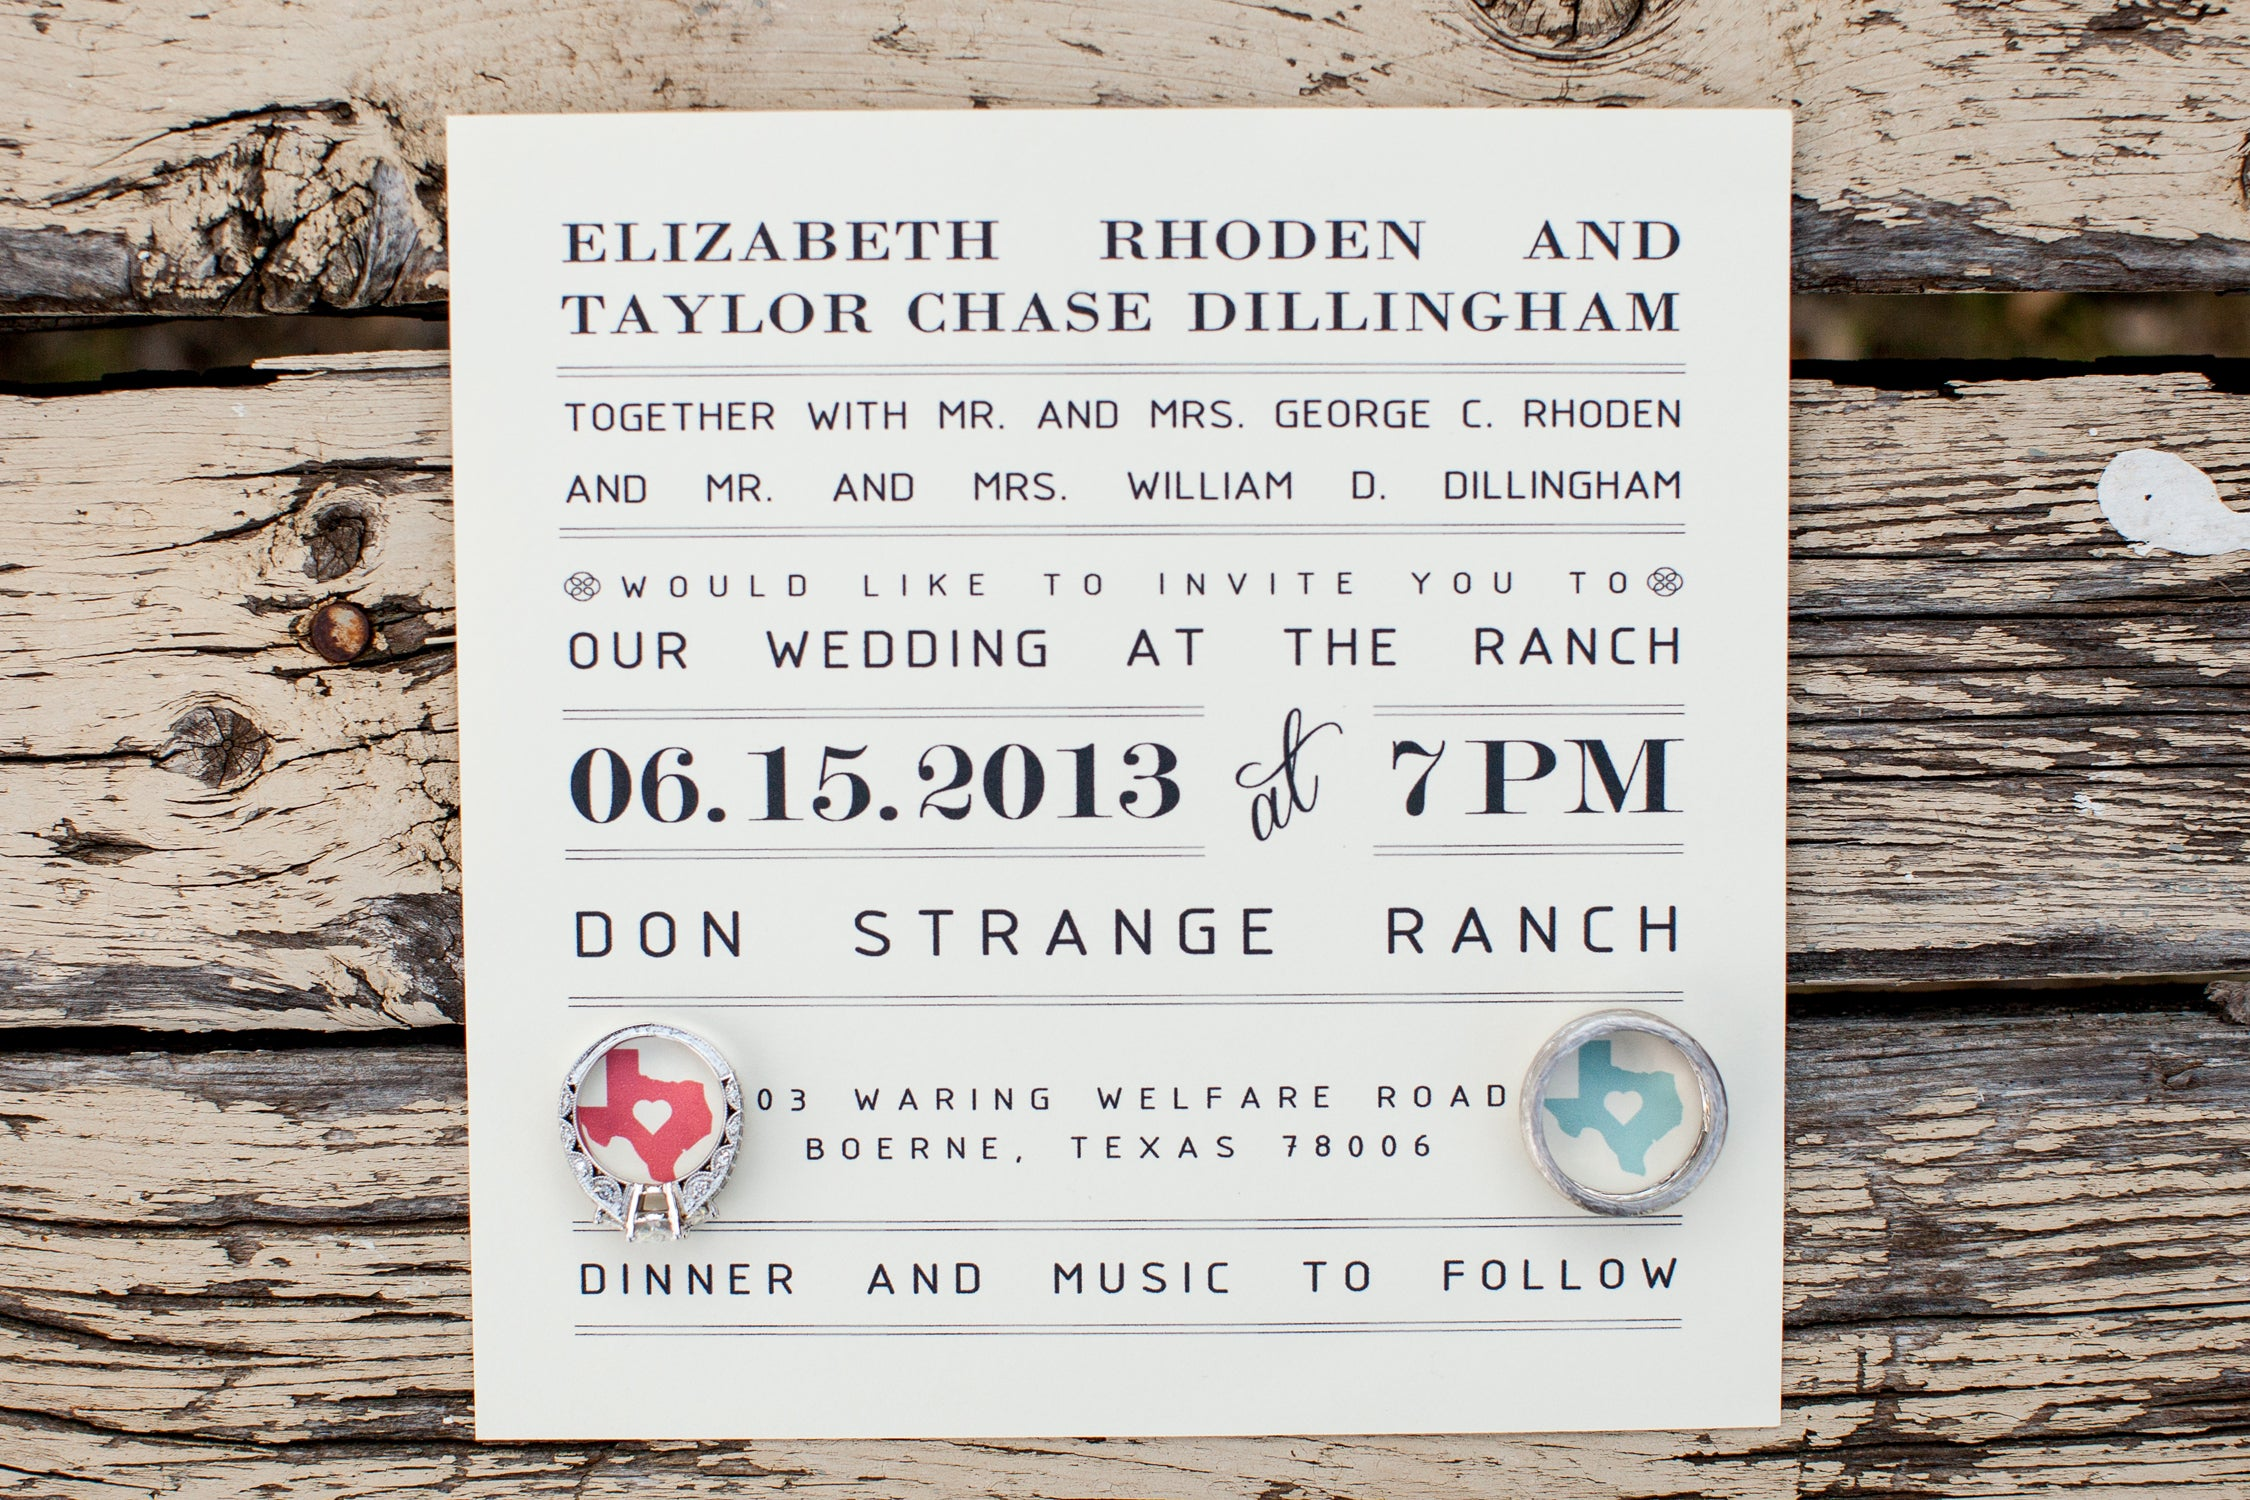 Coral And Teal Wedding Invitations: Wedding Invitation // Coral And Teal // Hearts